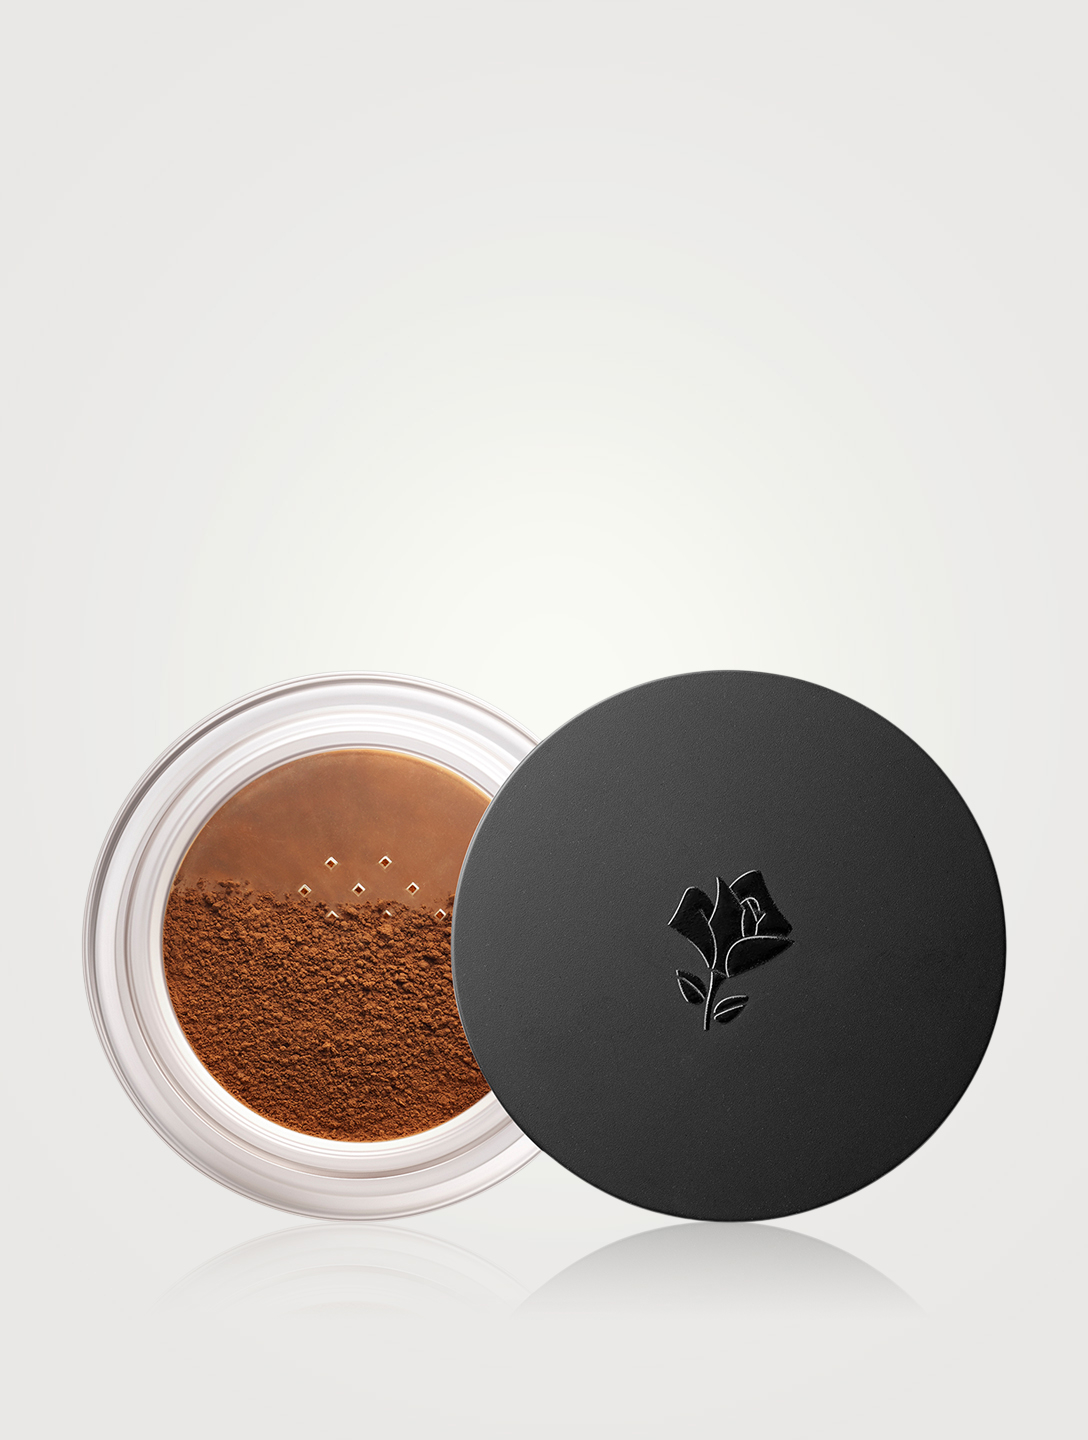 LANCÔME Long Time No Shine Loose Setting Powder Beauty Brown